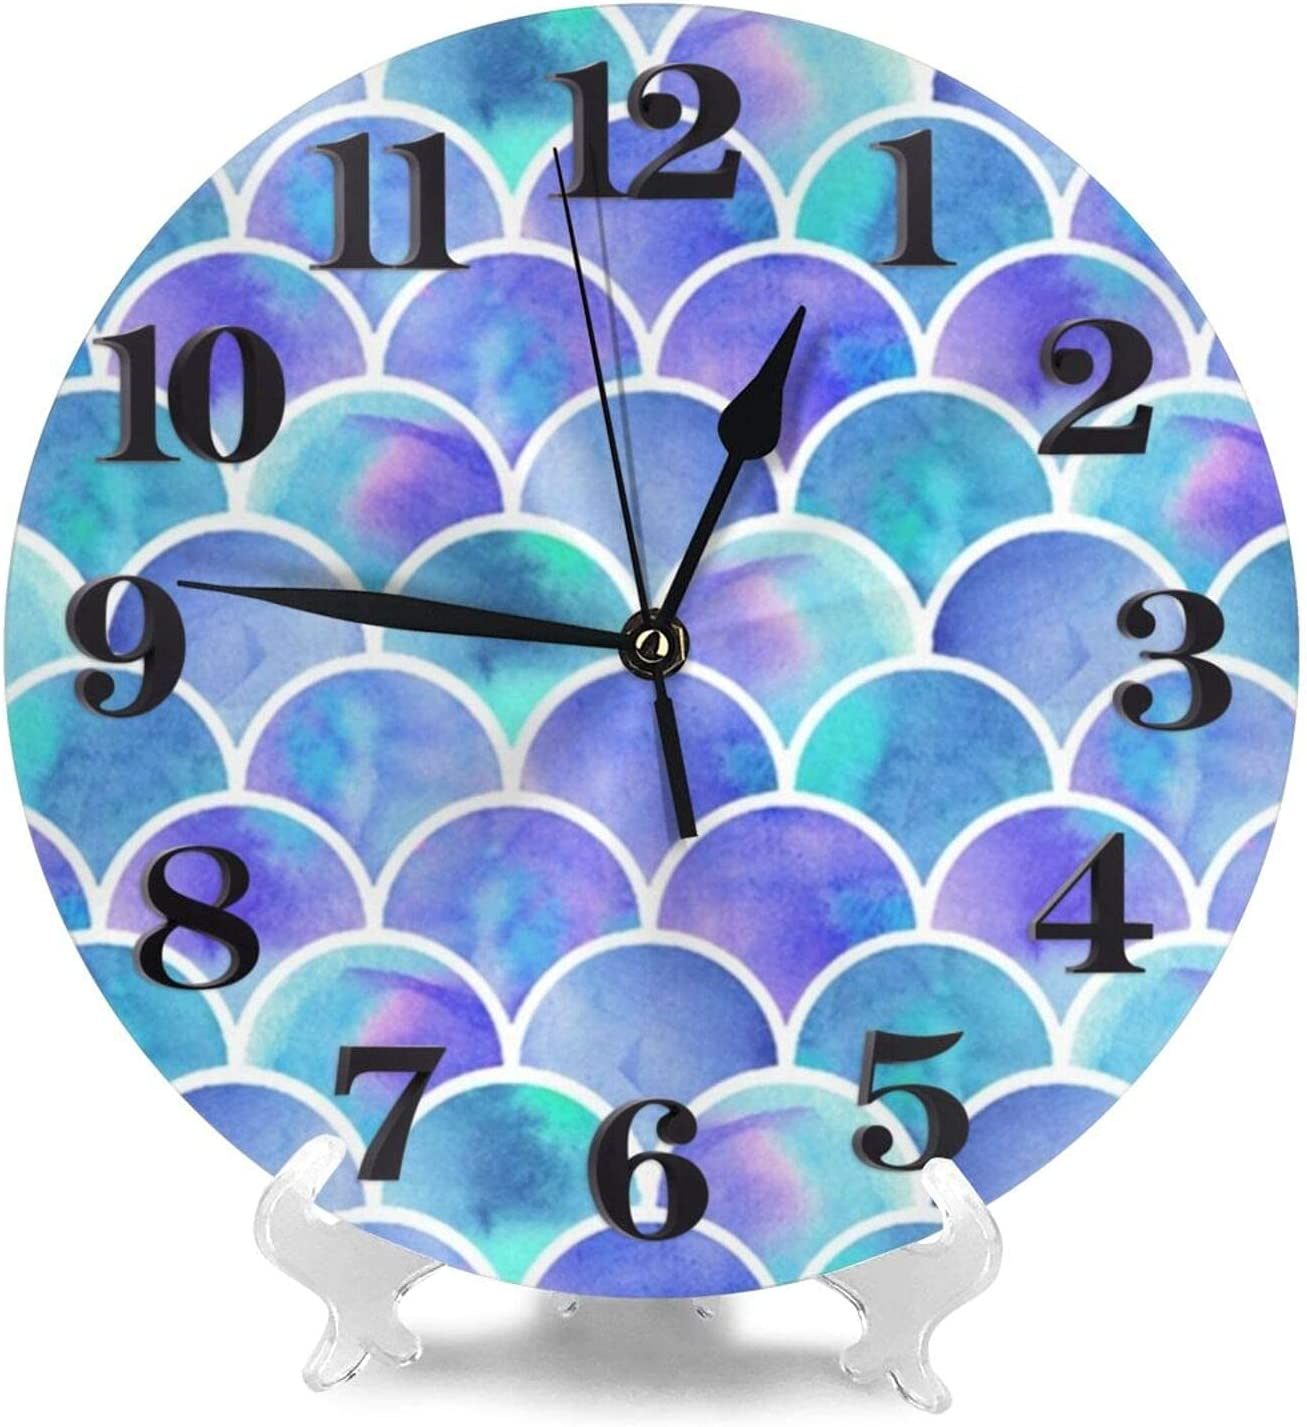 Mermaid Scale Wall Clock Silent Home Decor Battery Operated Non Ticking 10 inch Diameter for Bathroom Bedroom Kitchen Living Room